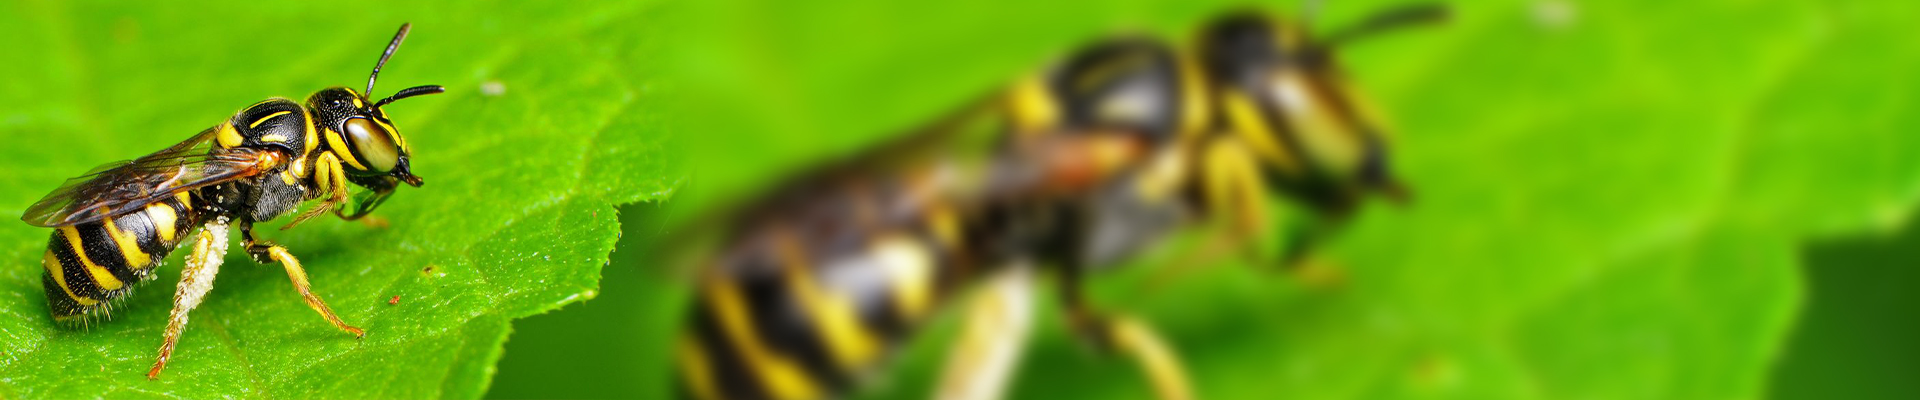 The Apidae Family: Everything You Need To Know About This Honey Bees Specie